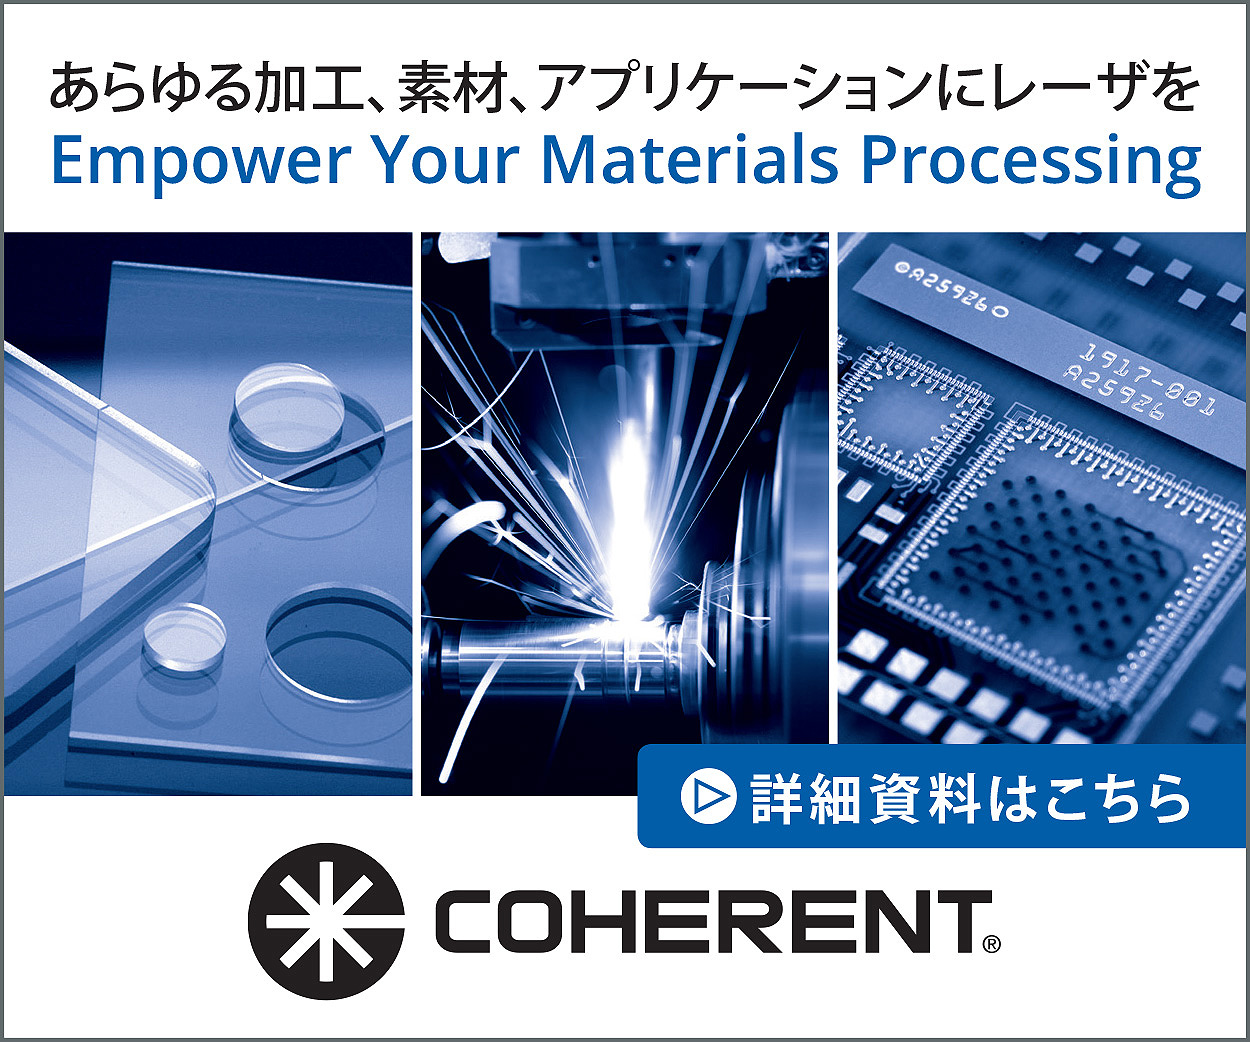 Empower Your Materials Processing